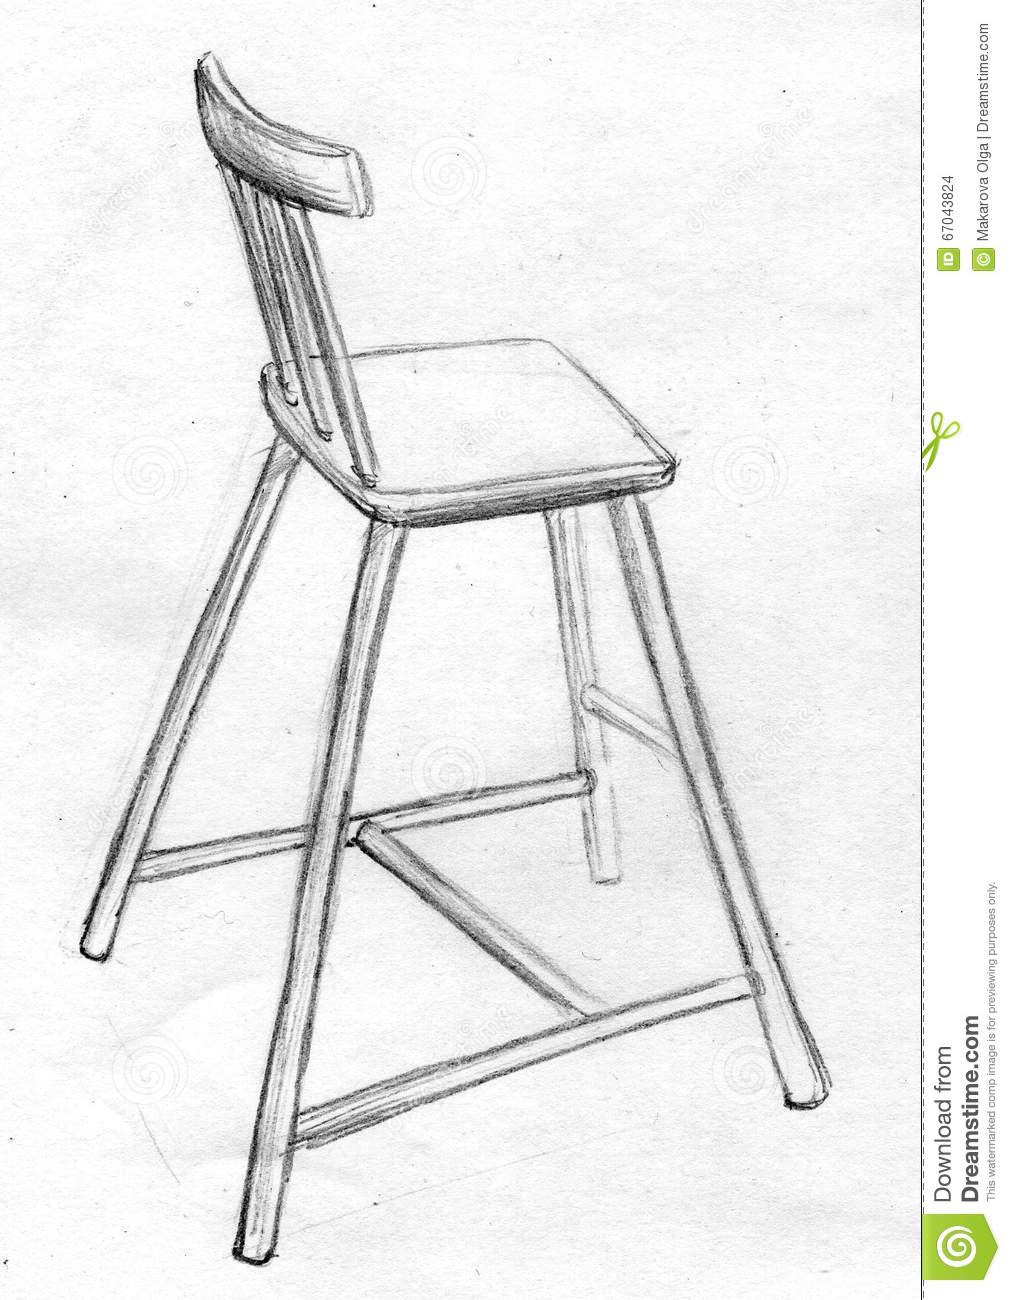 Chair drawing for kids - Kids Chair Pencil Sketch Stock Illustration Image 67043824